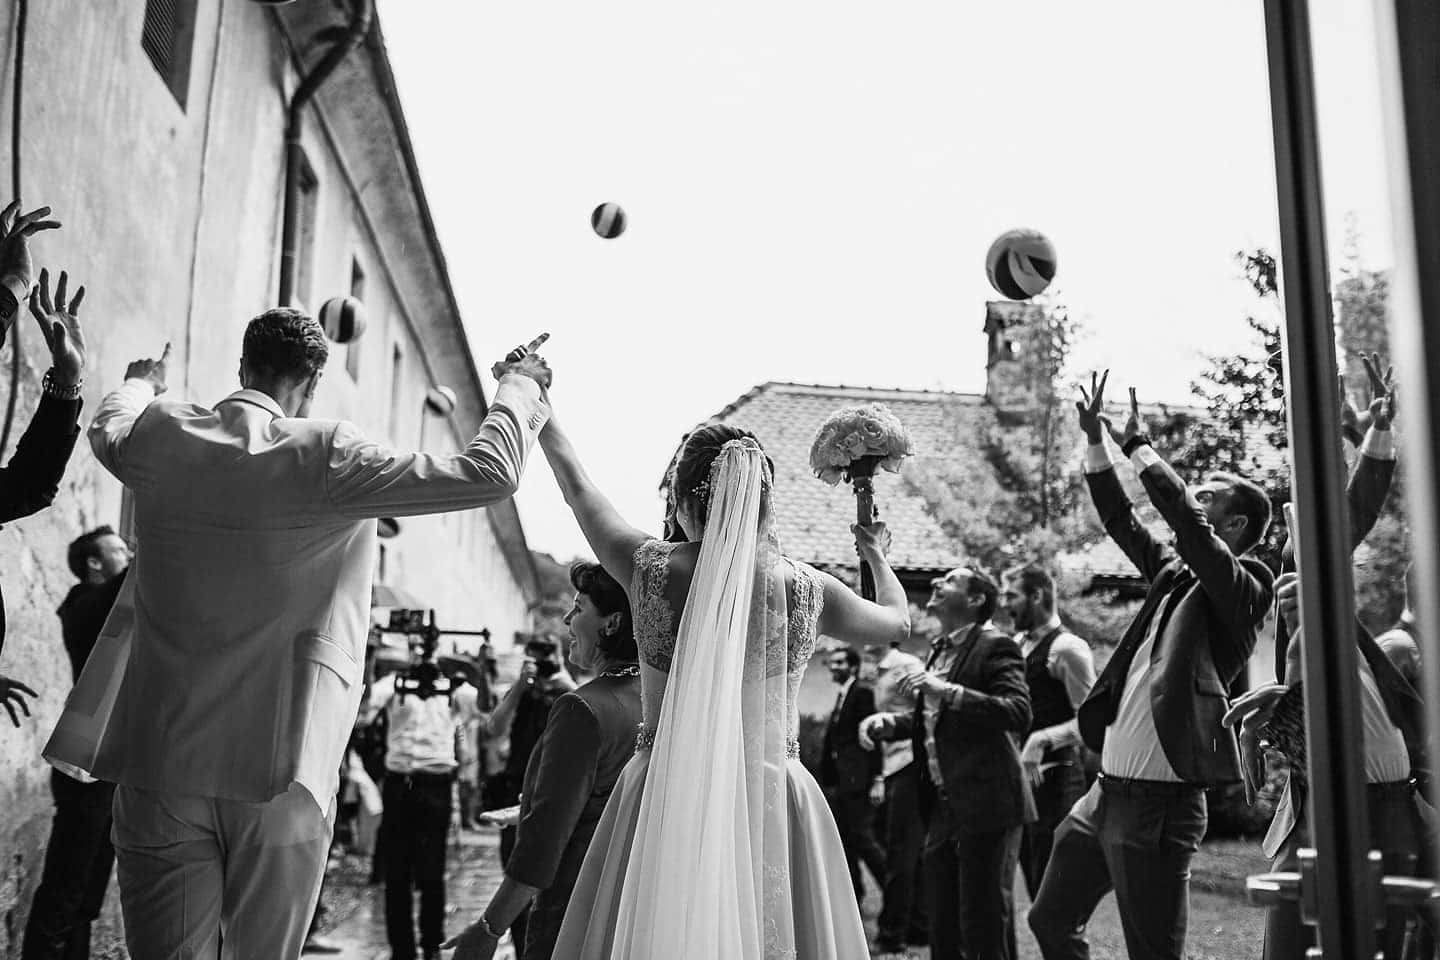 Best of wedding photography collection 2017 - by Aleks & Irena Kus 28